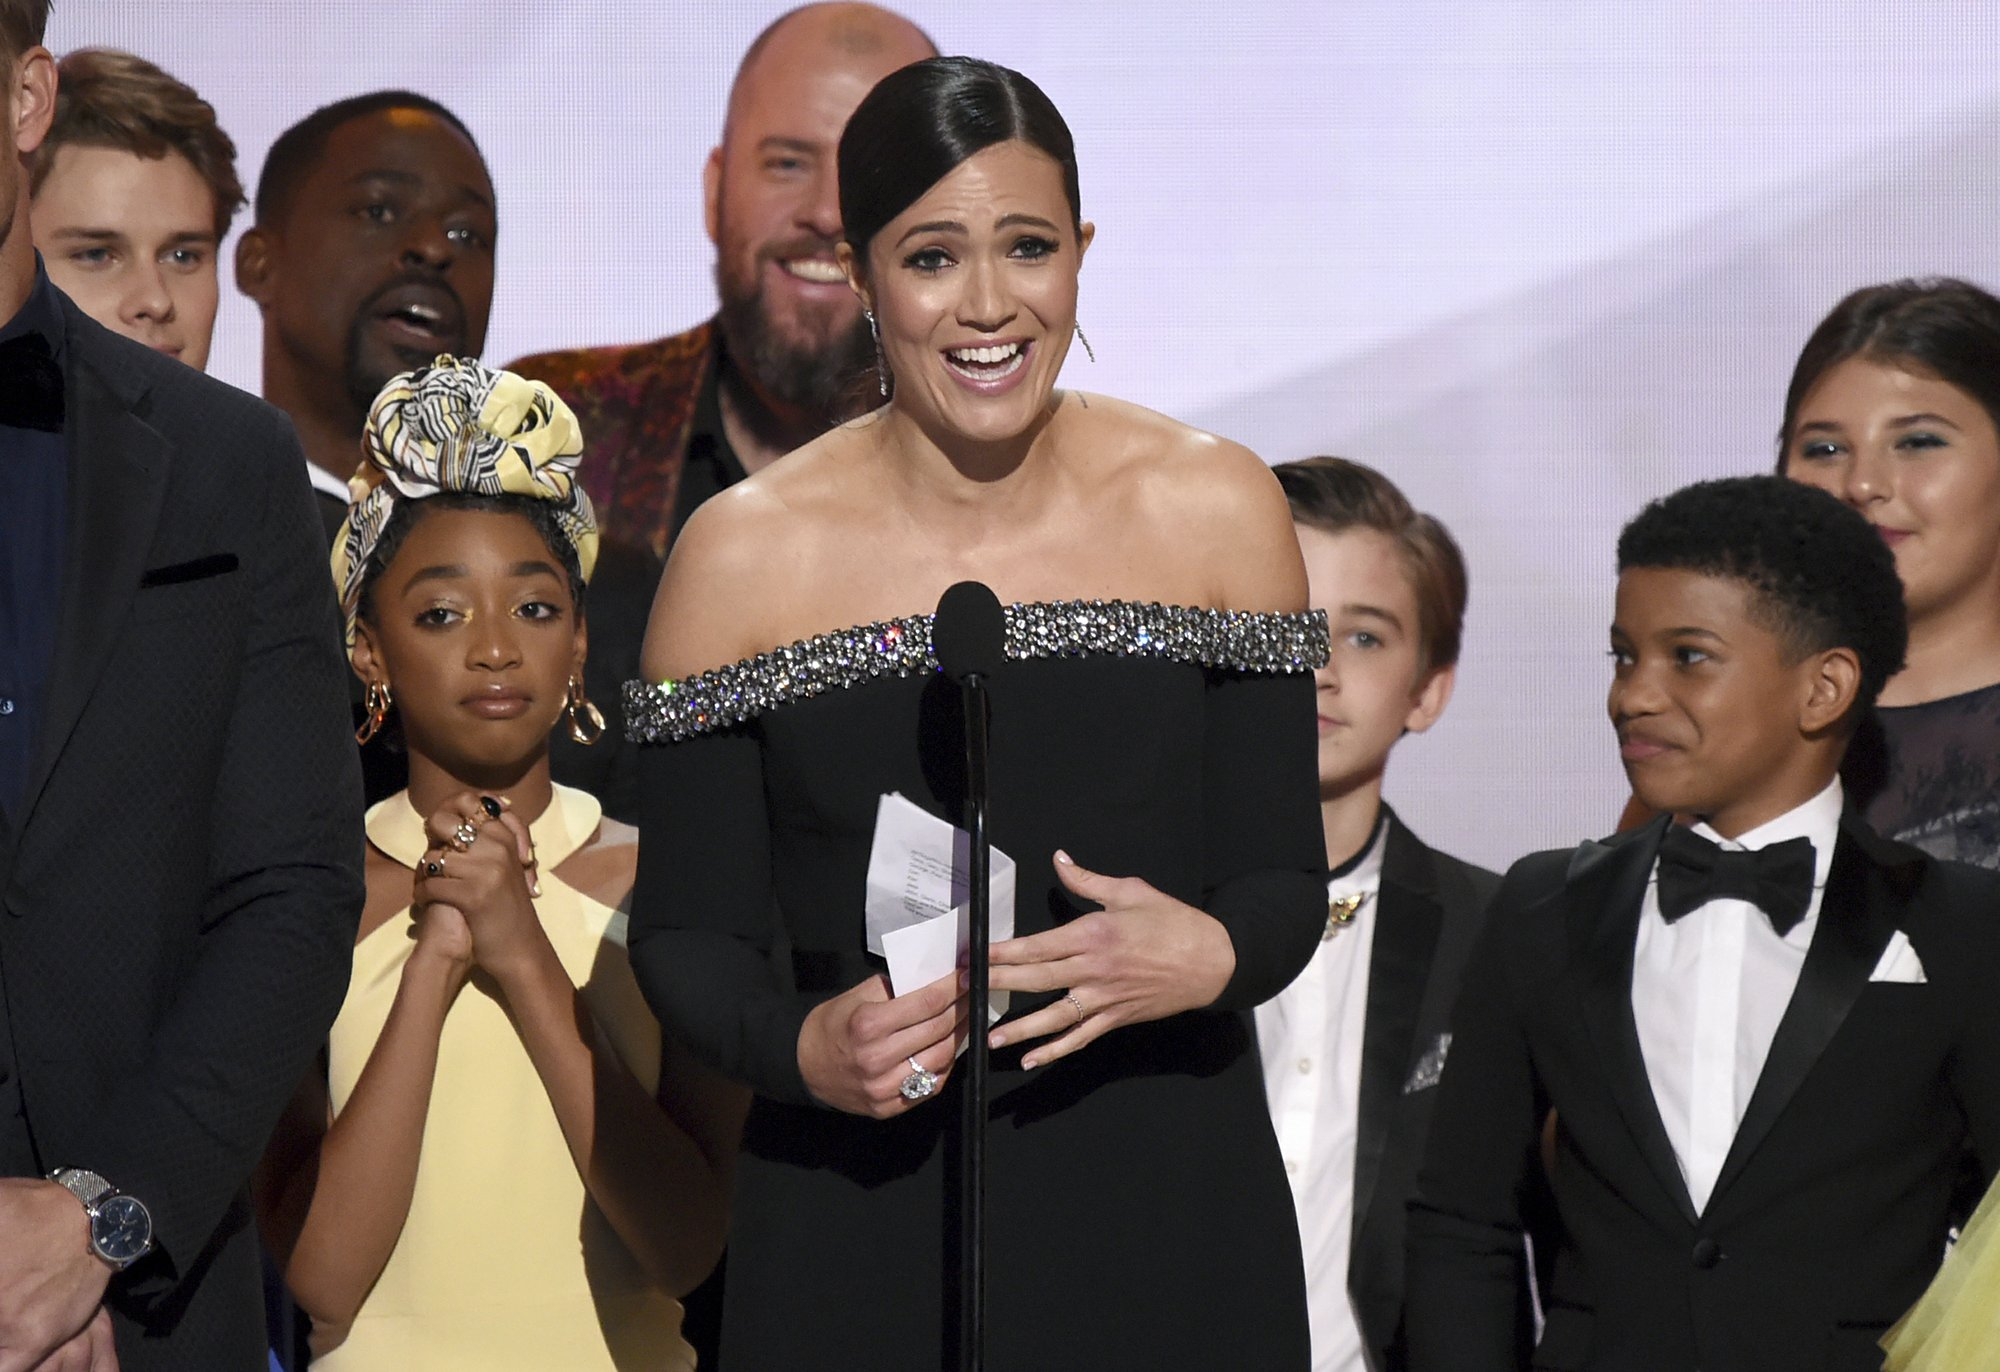 The complete list of winners at Screen Actors Guild Awards